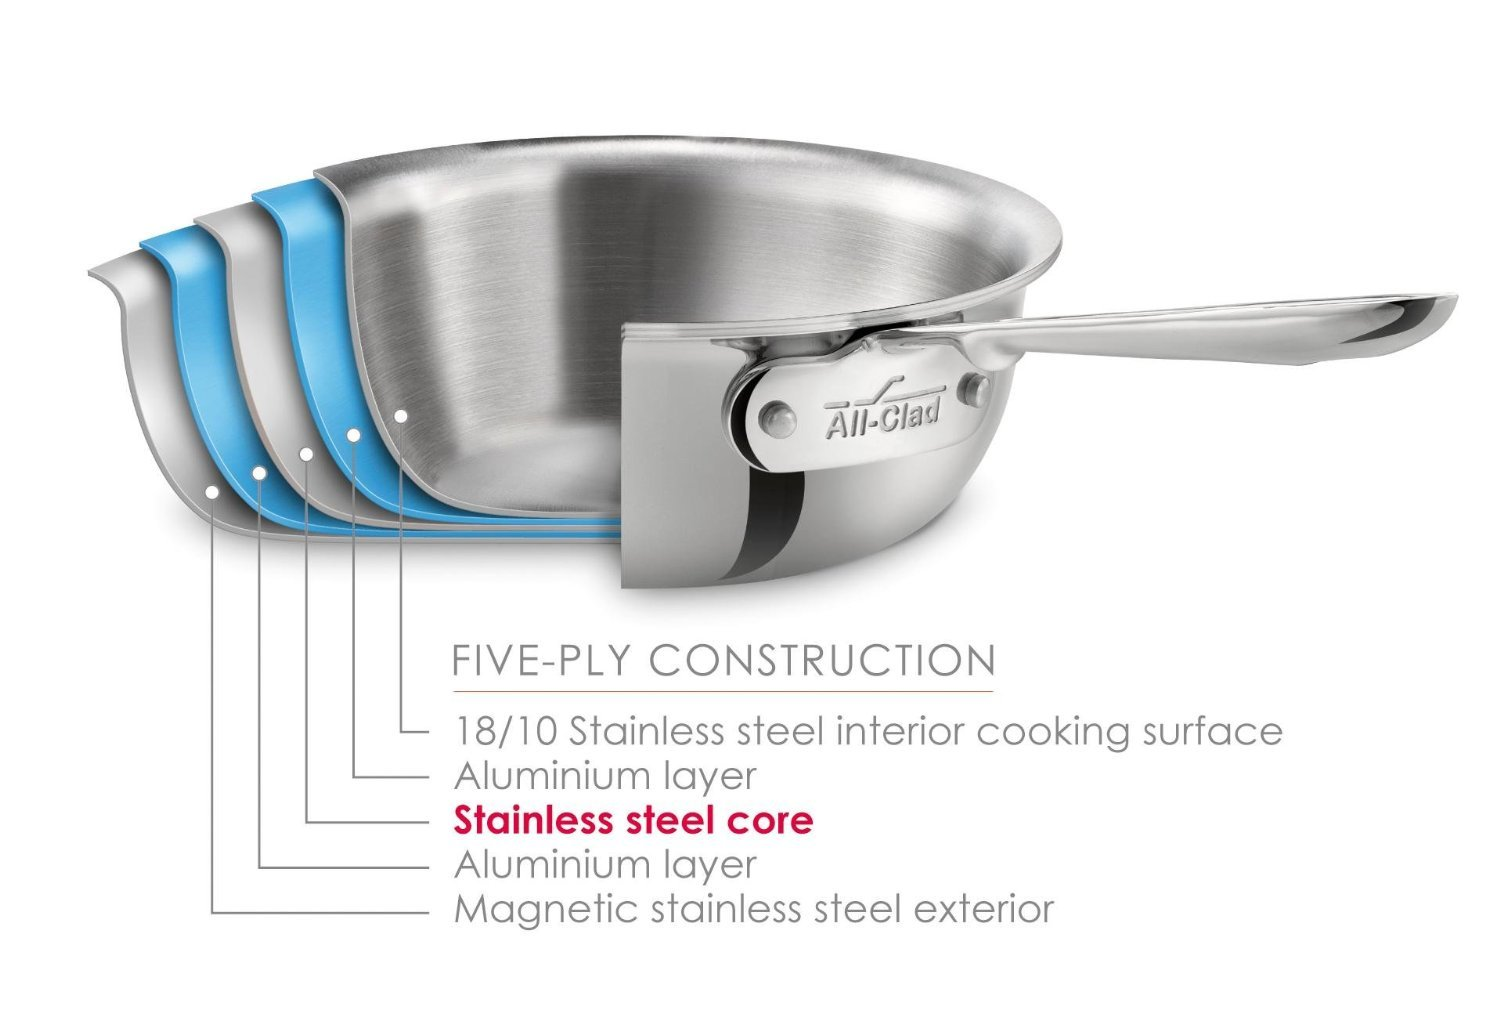 All-Clad BD005714 D5 Brushed 18/10 Stainless Steel 5-Ply Bonded Dishwasher Safe Cookware Set, 14-Piece, Silver by All-Clad (Image #2)